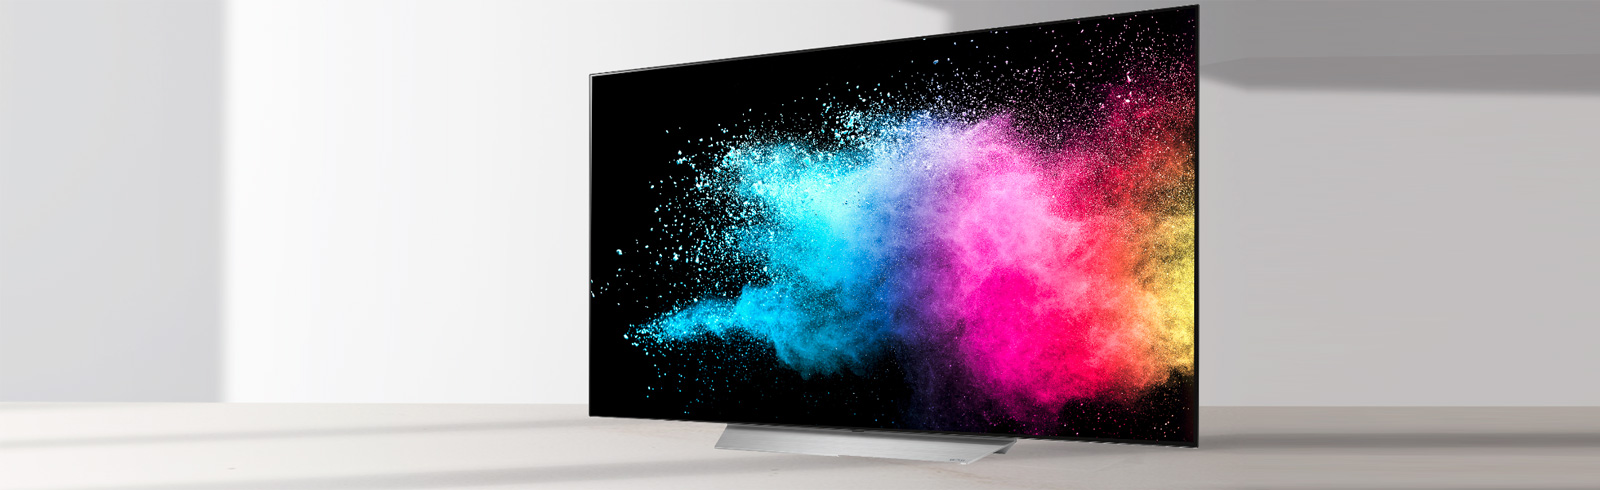 LG plans on releasing 48-inch OLED TVs next year